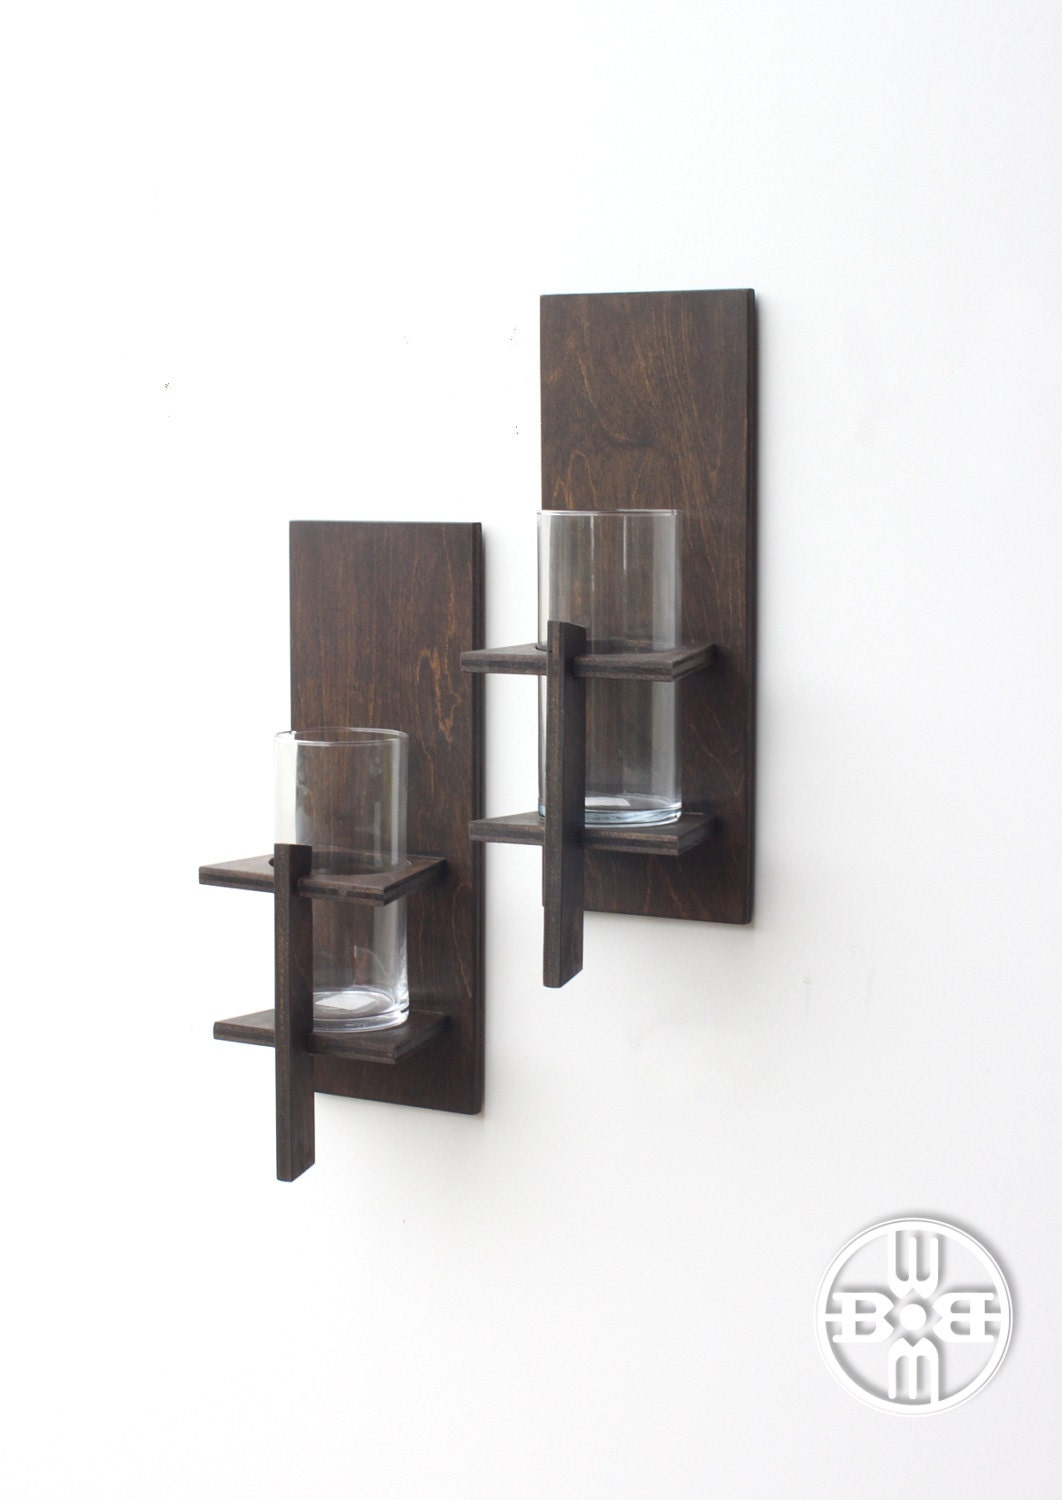 Candle Wall Sconces Rustic : Wall Sconces Pair Rustic Decor Candle Sconces Rustic